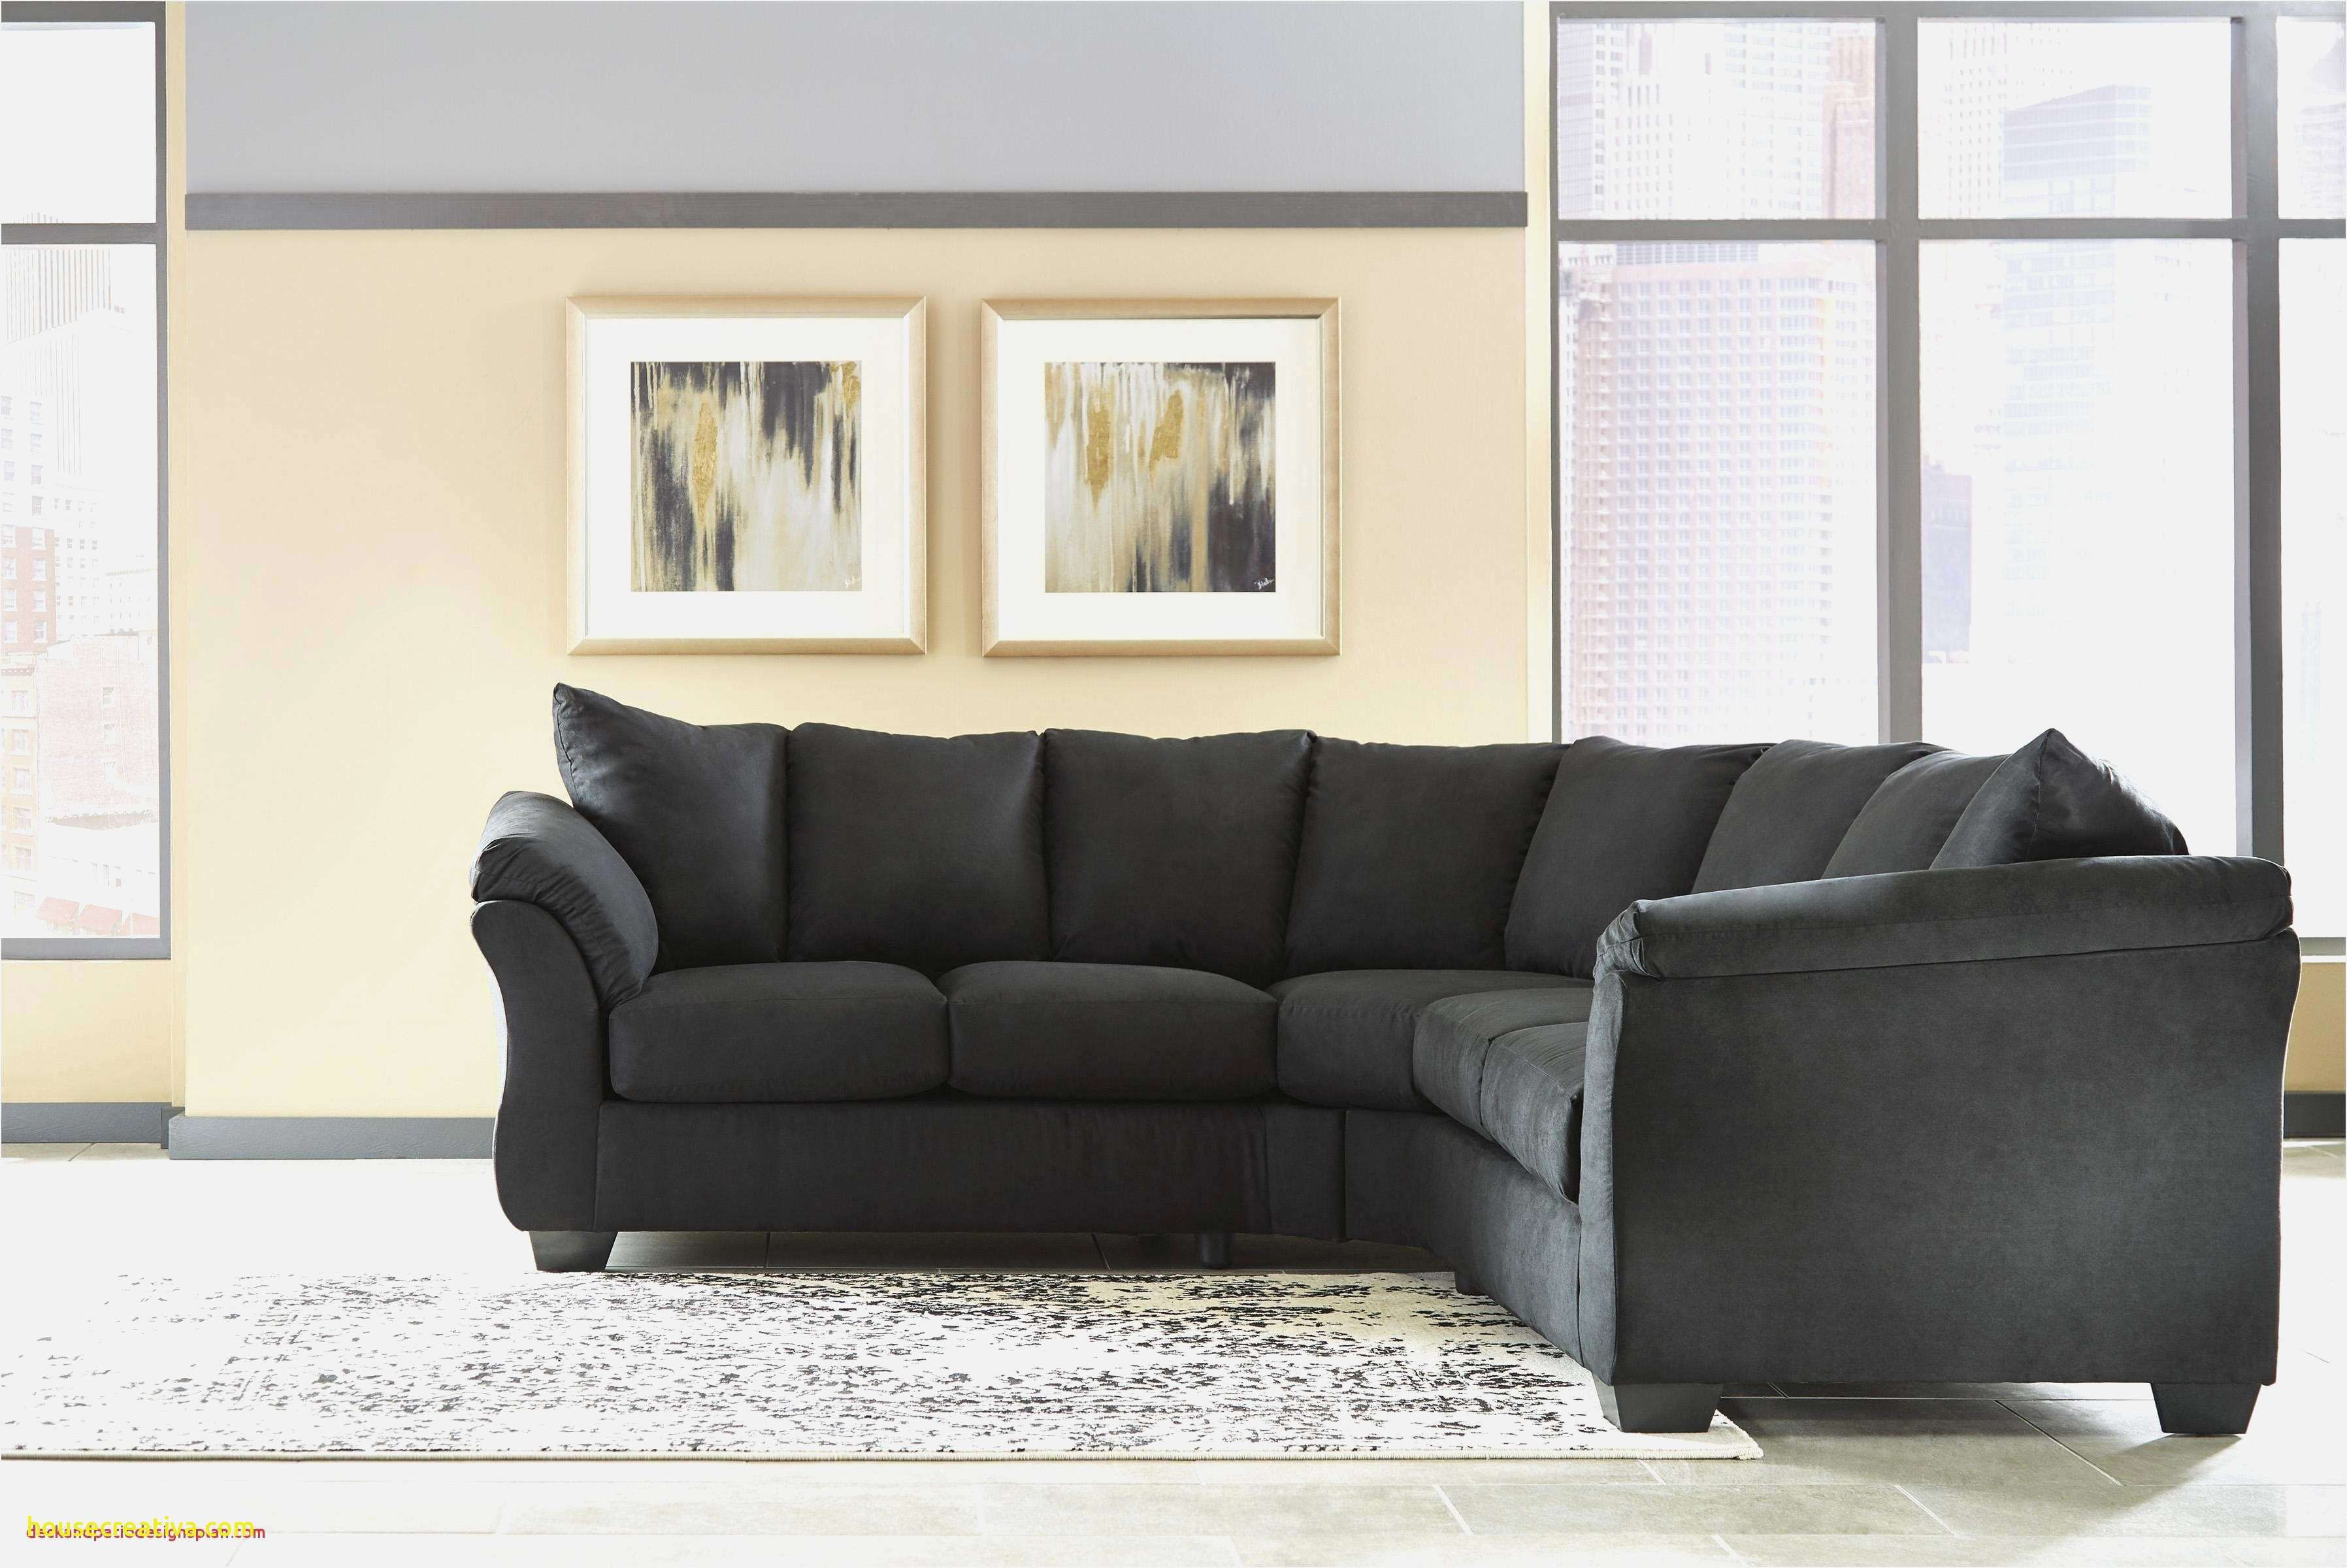 Unique Dimensions Of L Shaped Sofa Homedecoration Homedecorations Homedecorationideas Homed Sofas For Small Spaces Sofa Design Sectional Sofa With Chaise